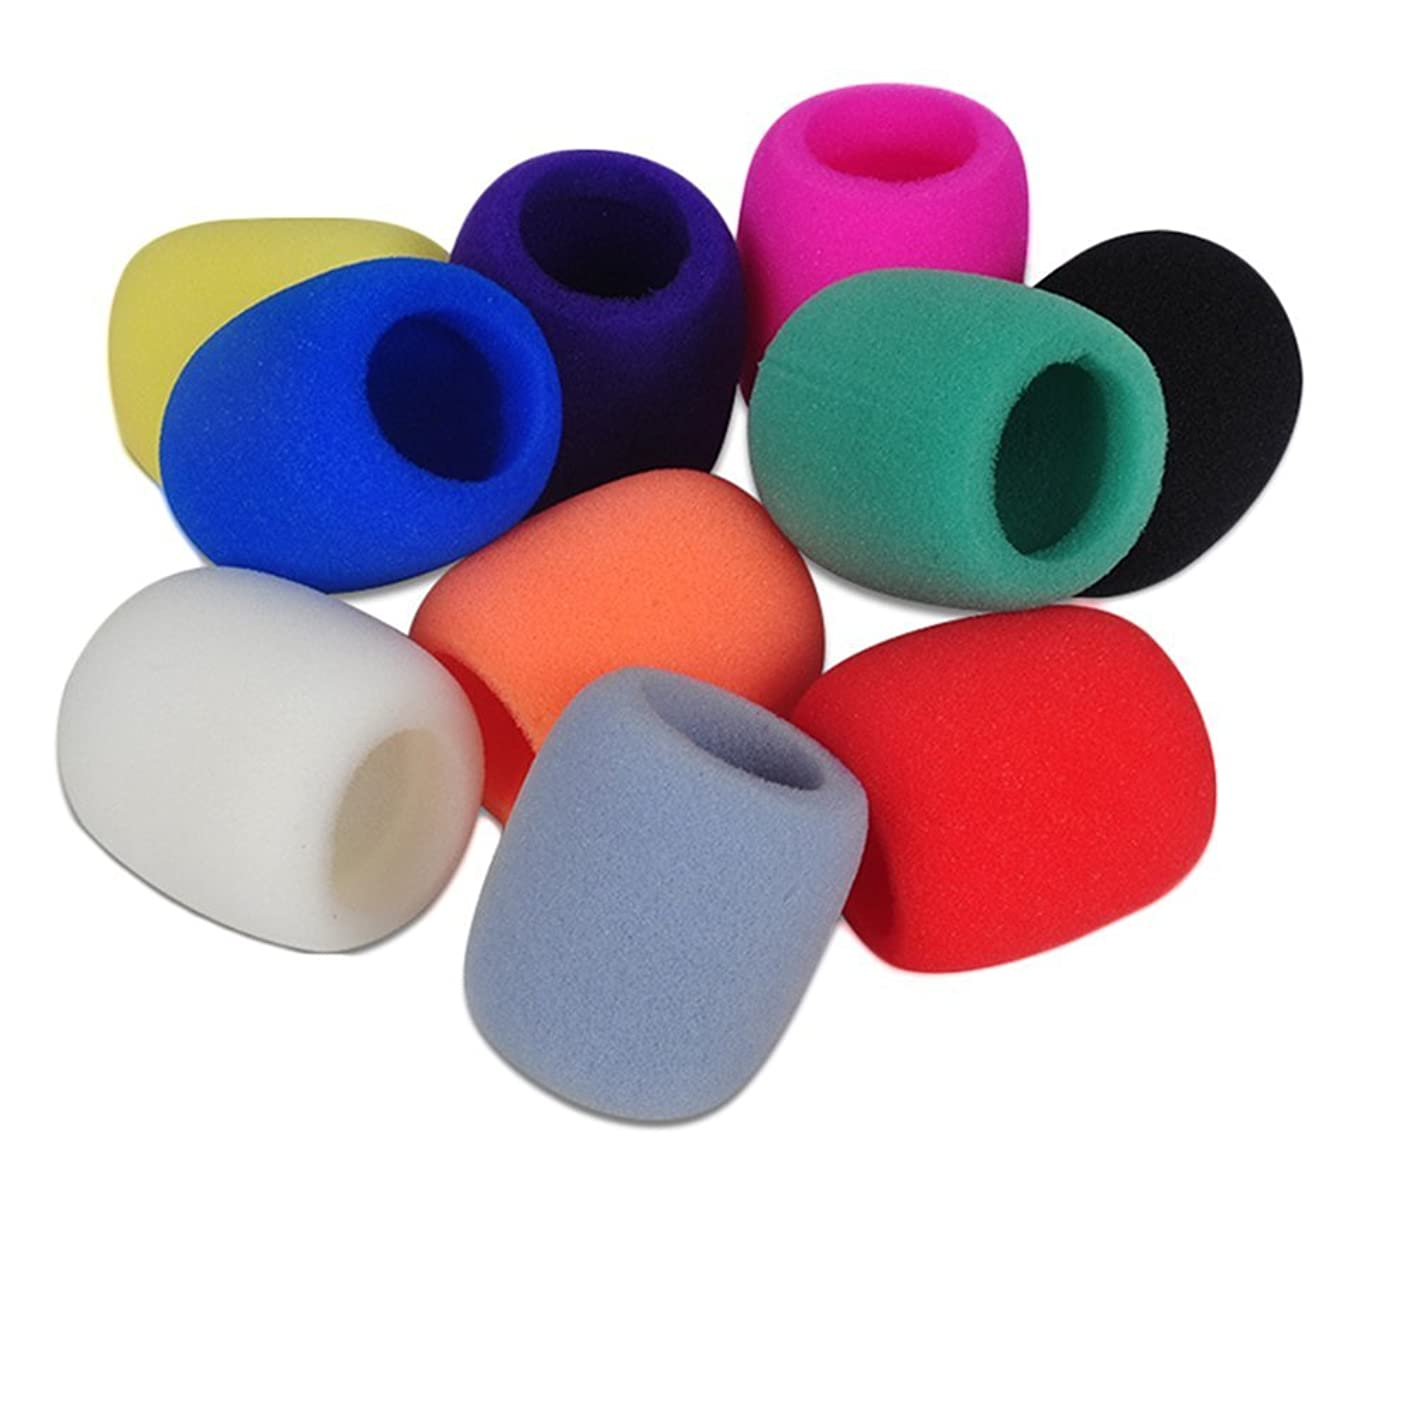 Patty Both Handheld Stage Microphone Windscreen Foam Cover, 10 Color